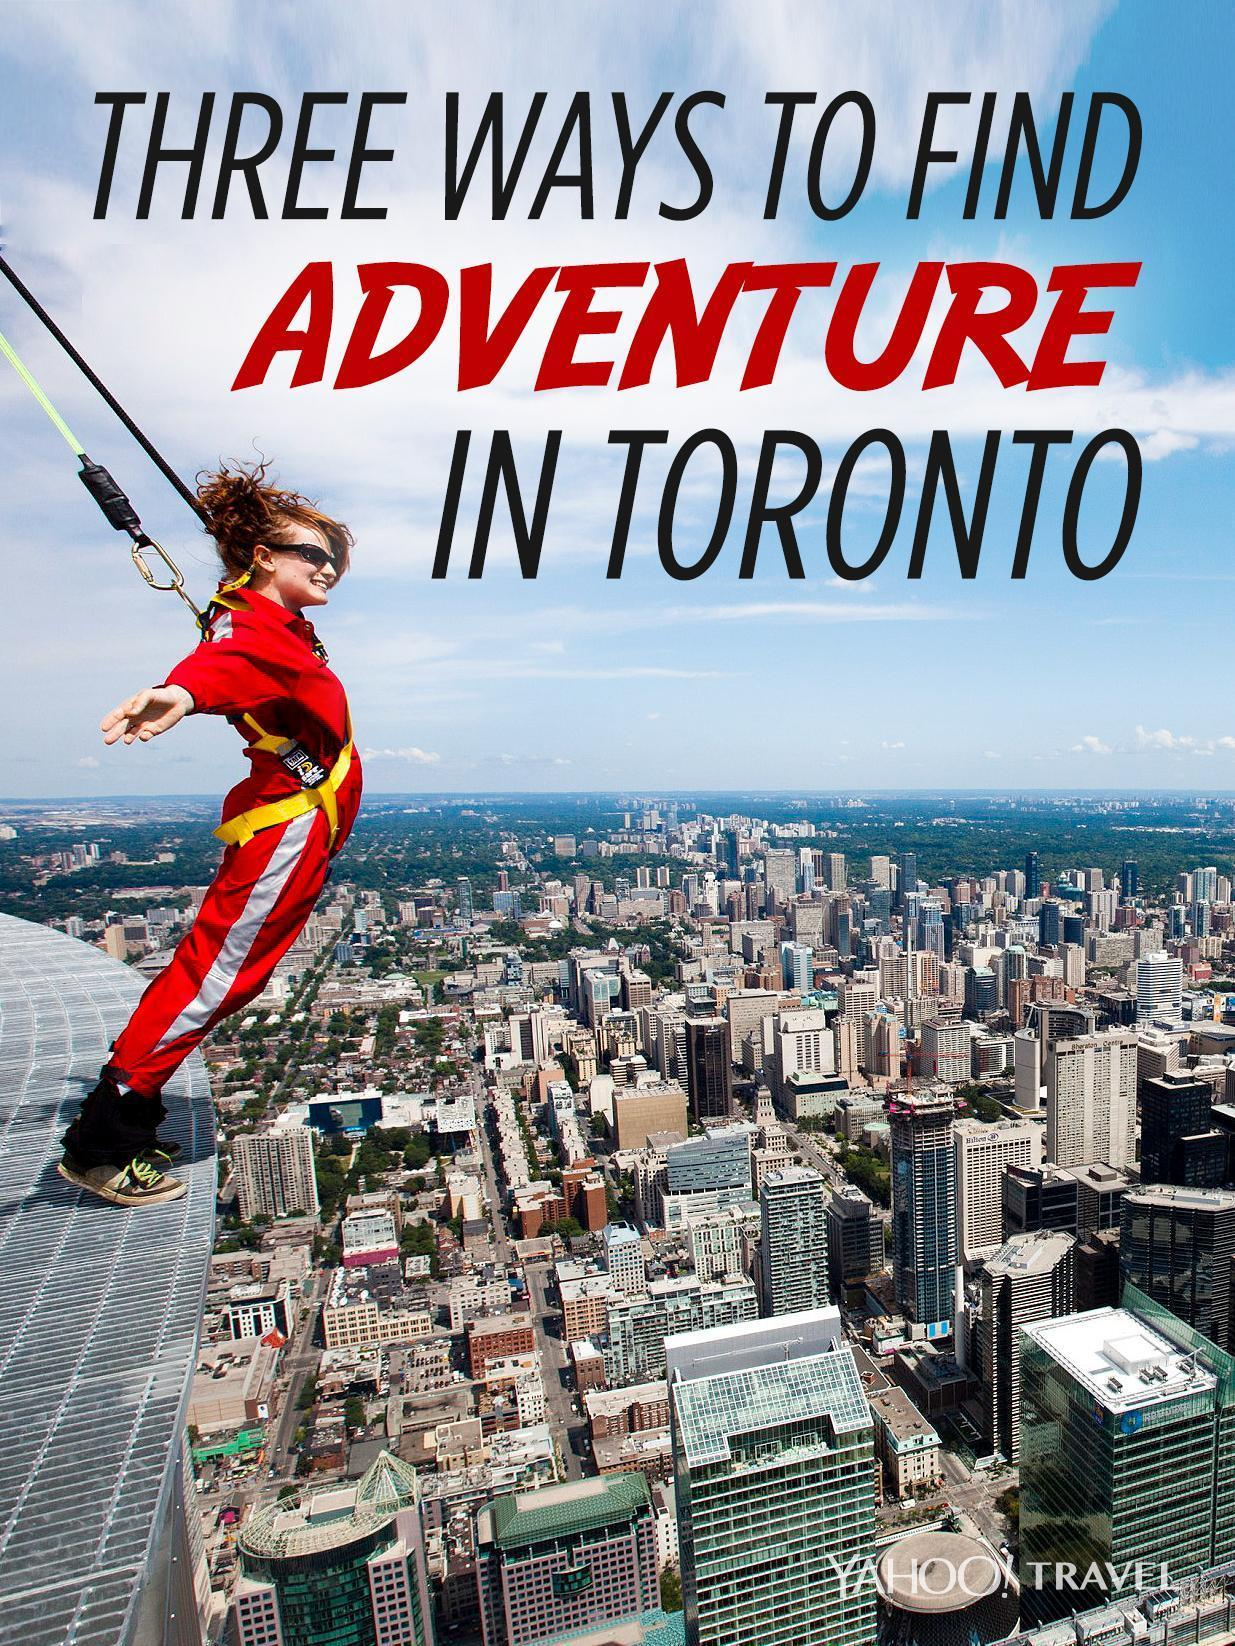 Three Ways to Find Adventure in Toronto